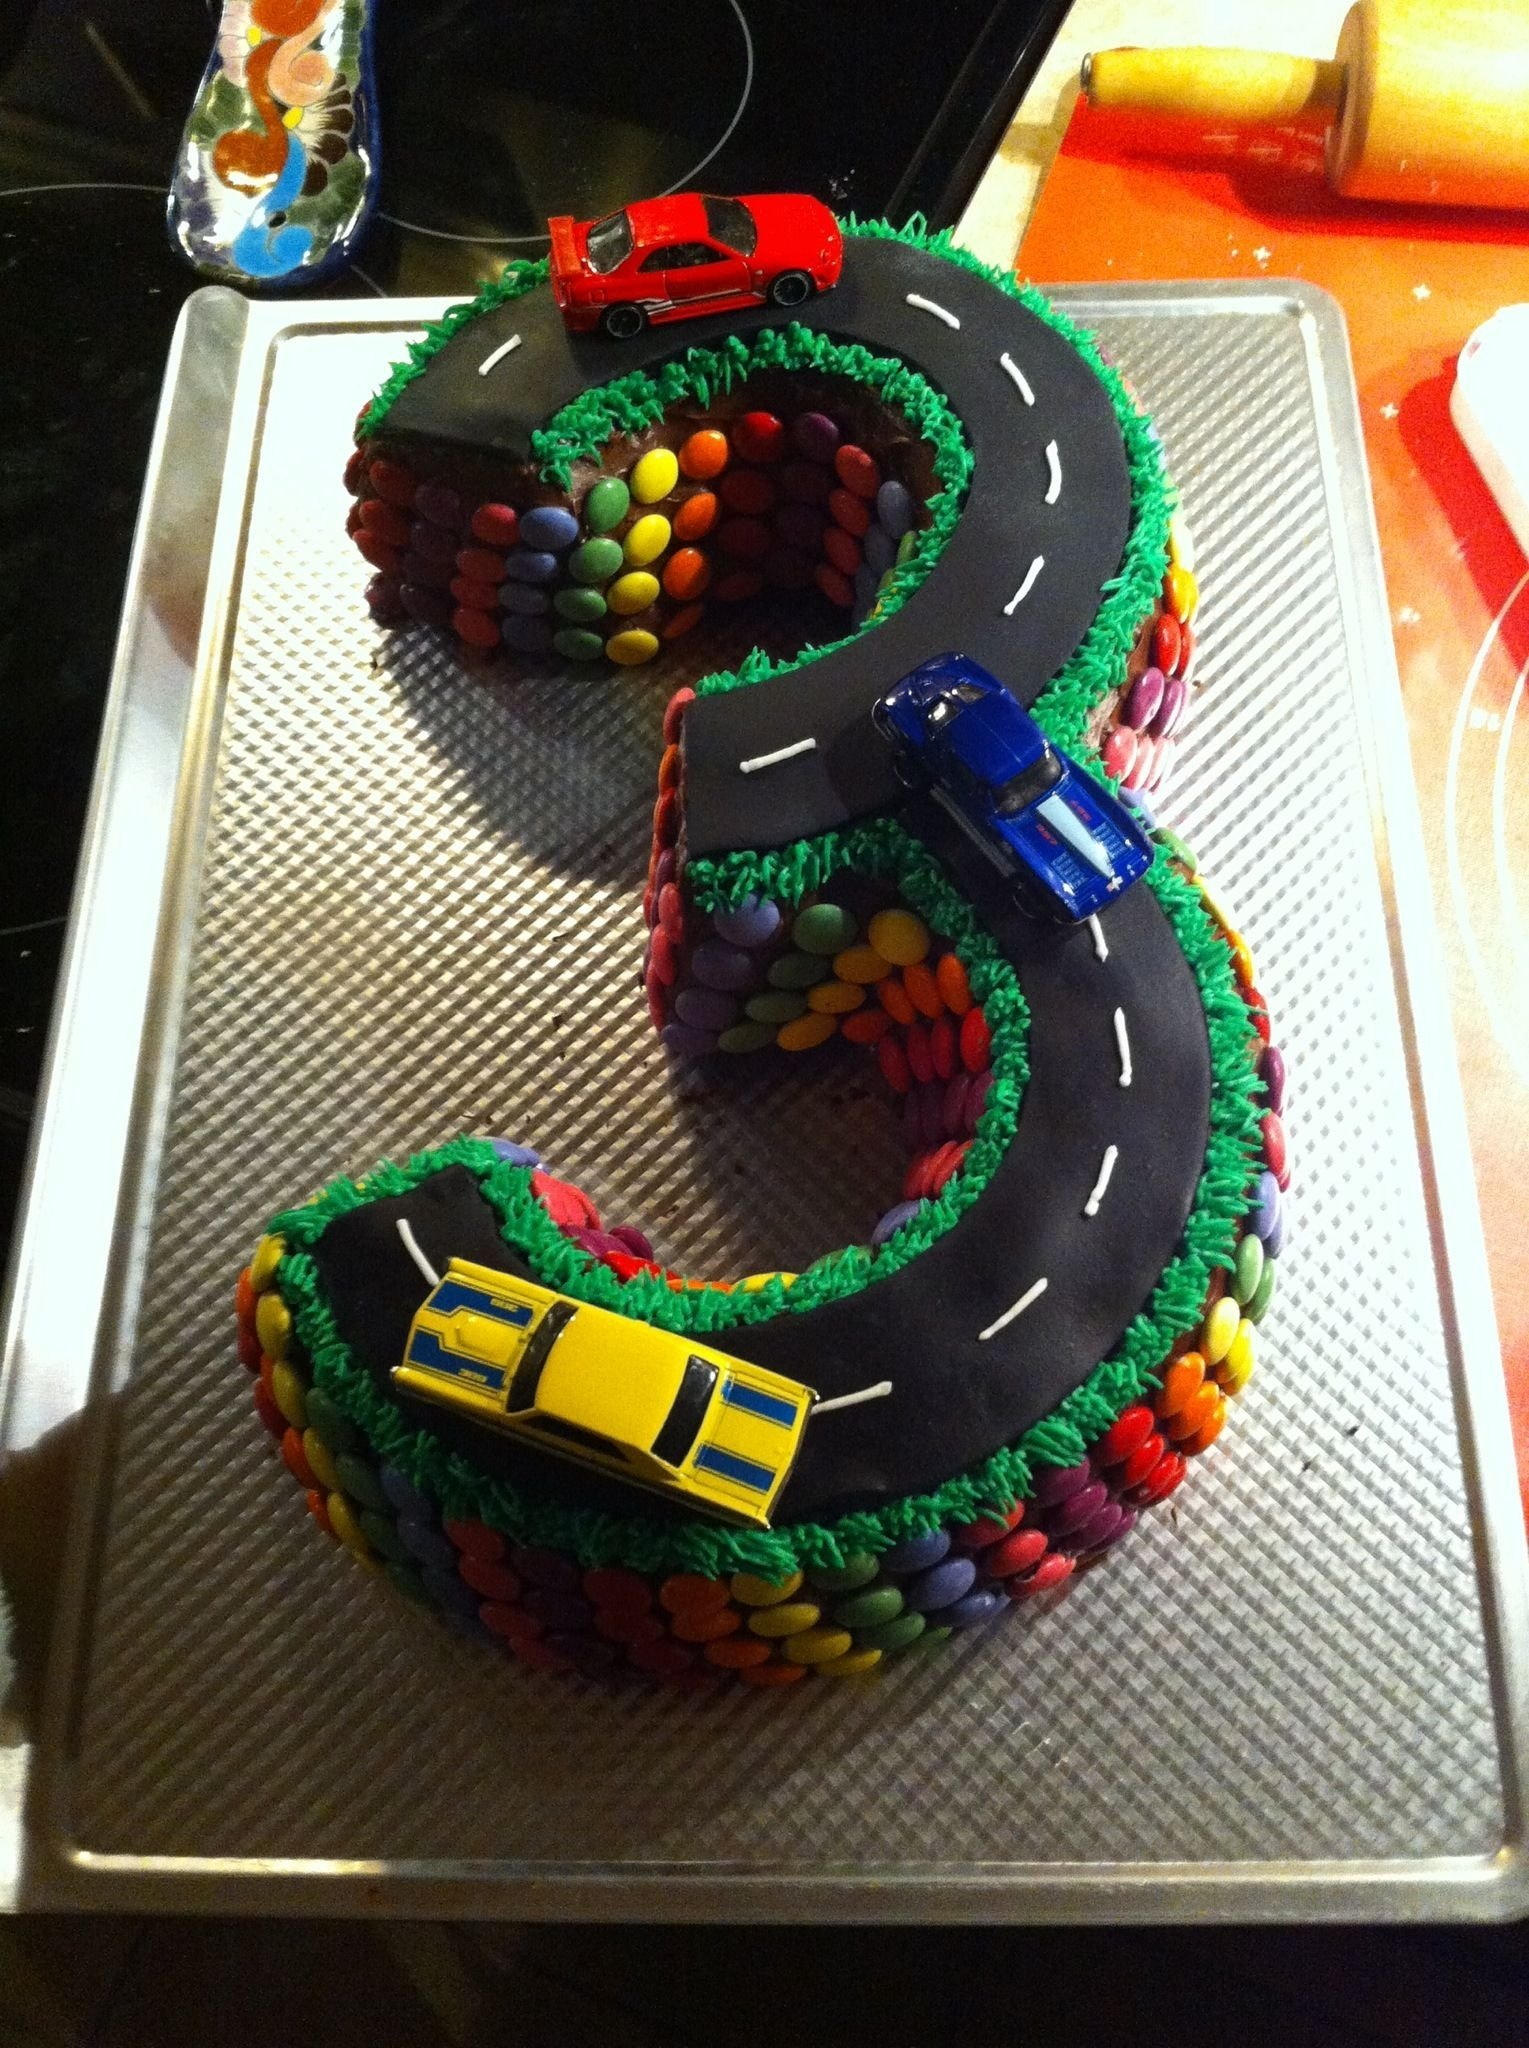 10 Fantastic 3 Year Old Birthday Cake Ideas 3 year old boy birthday cake if anyone wants to make this let me 1